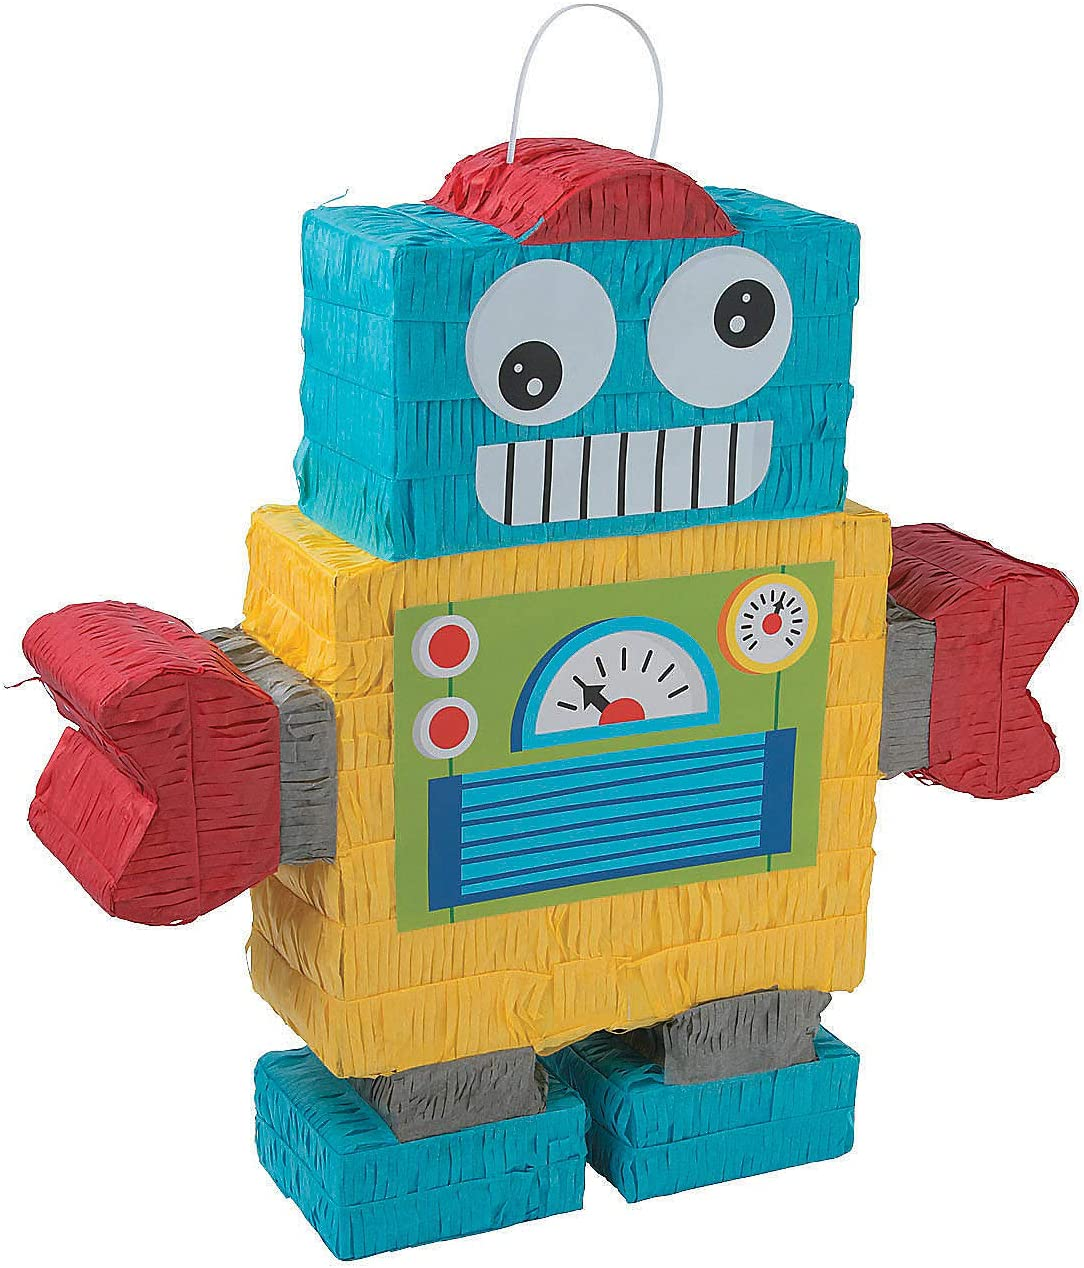 Robot Party Pinata - Piece Super beauty product restock quality top! Decor Cheap mail order specialty store 1